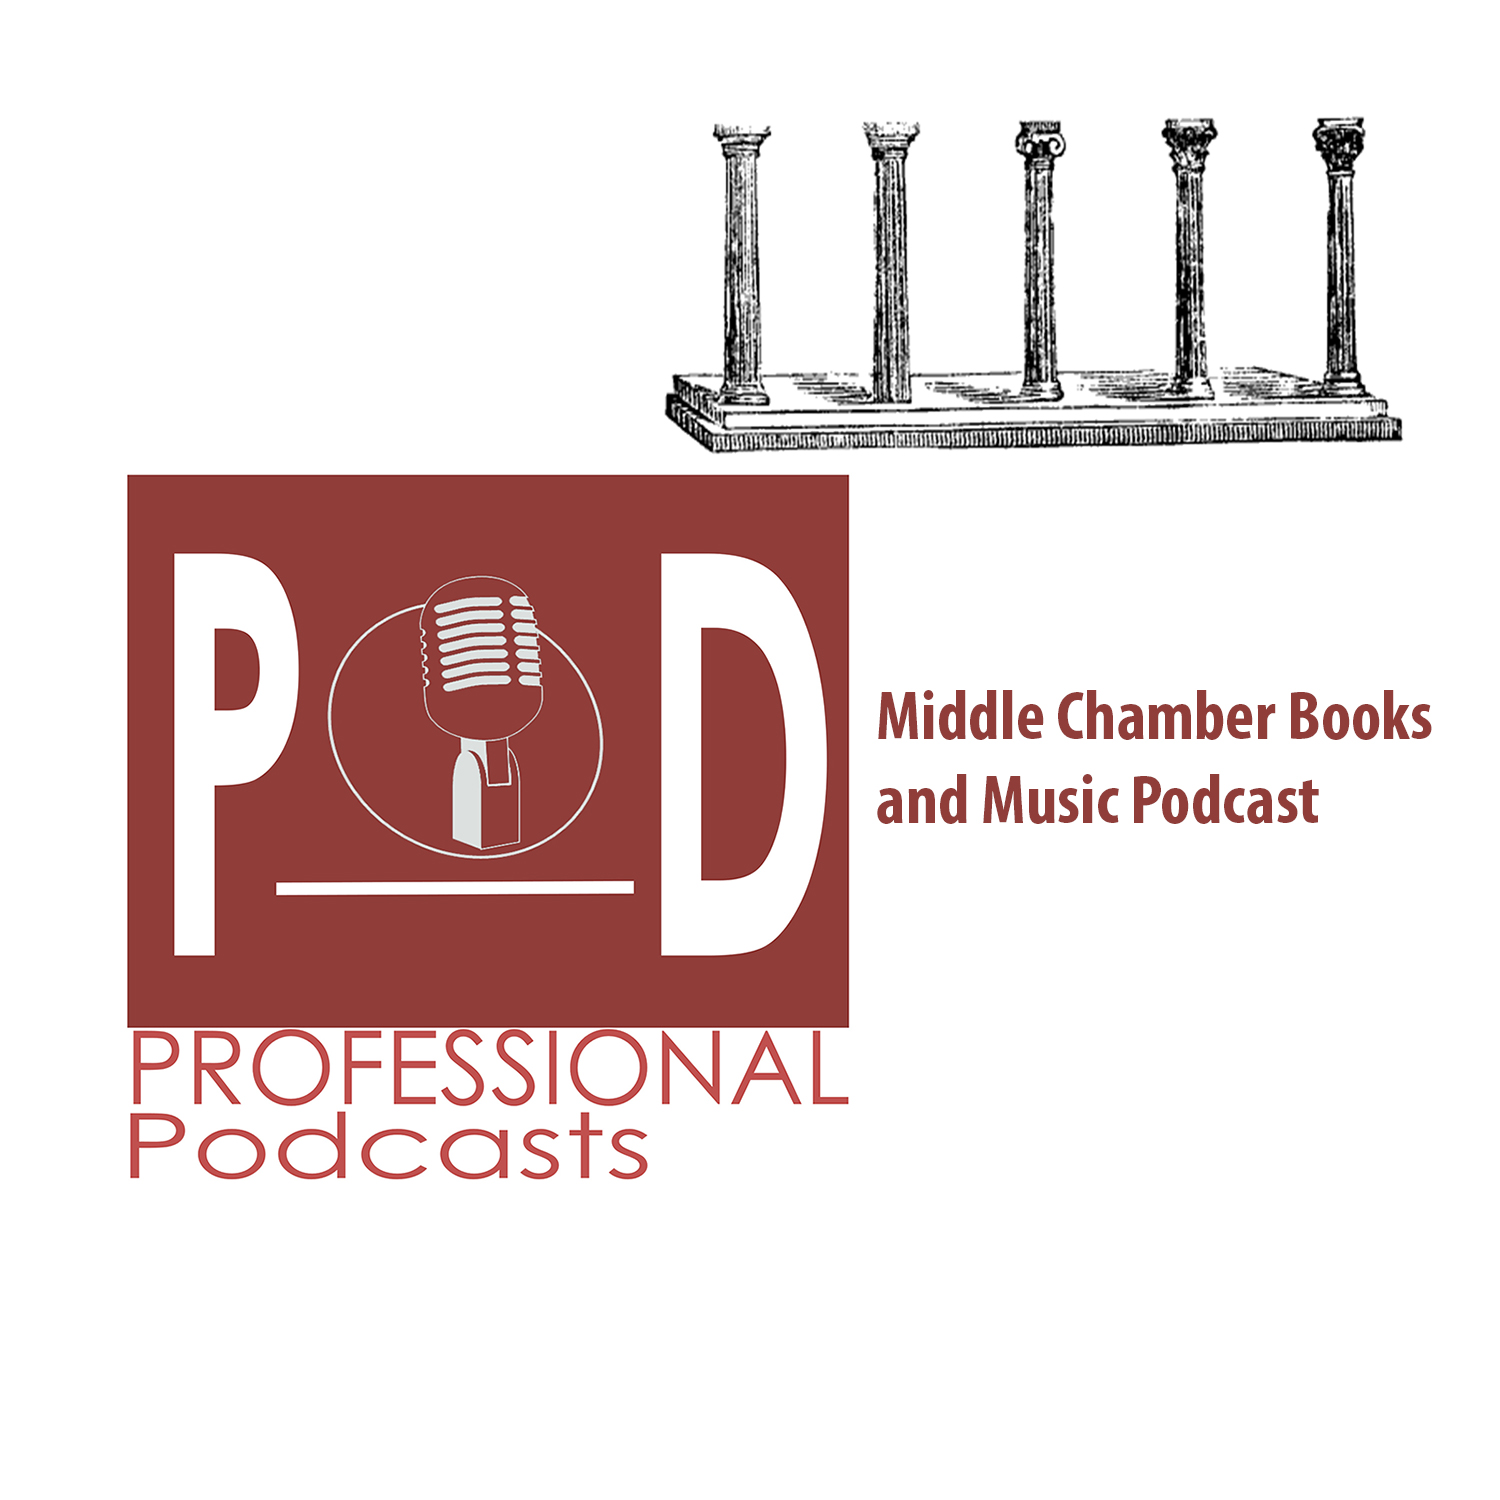 Middle Chamber Books and Music Podcast – Lubetkin Media Companies LLC